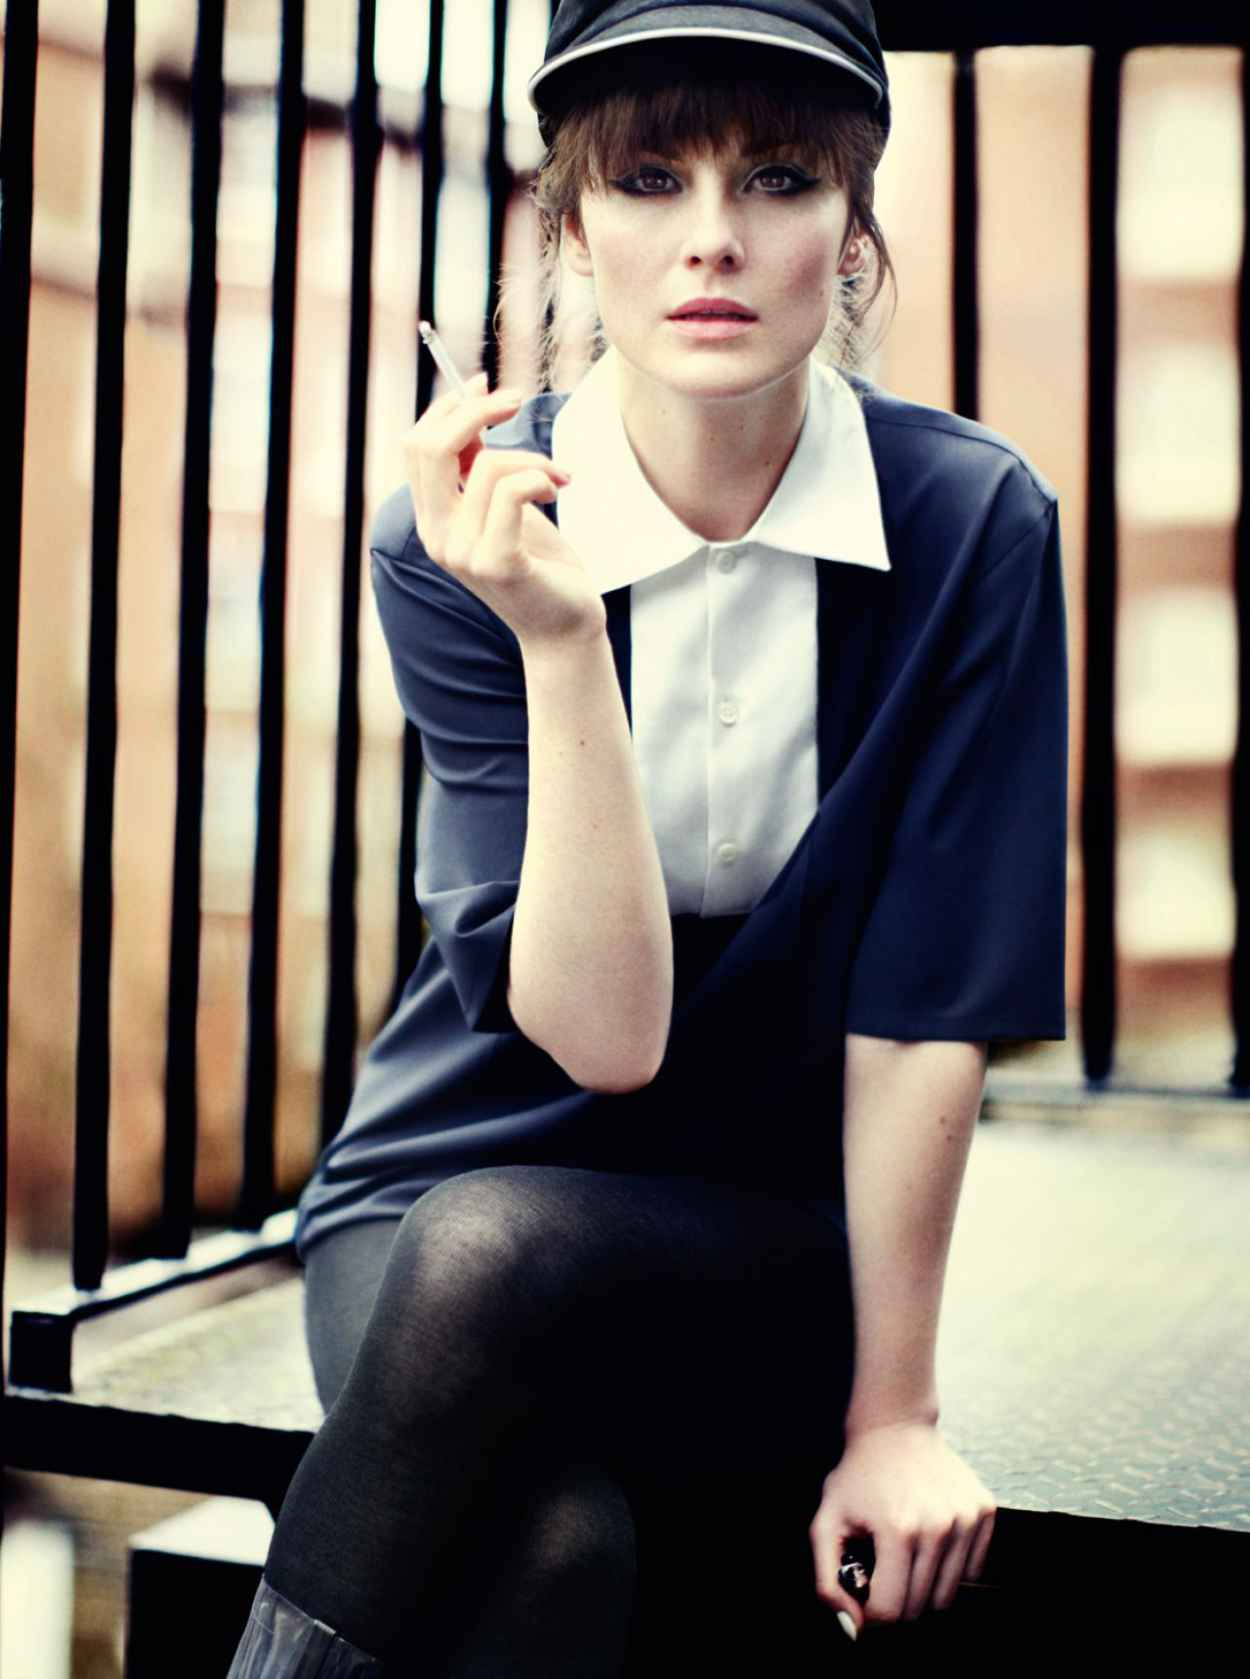 Michelle Dockery Photoshoot by Boo George - Interview November 2012-1